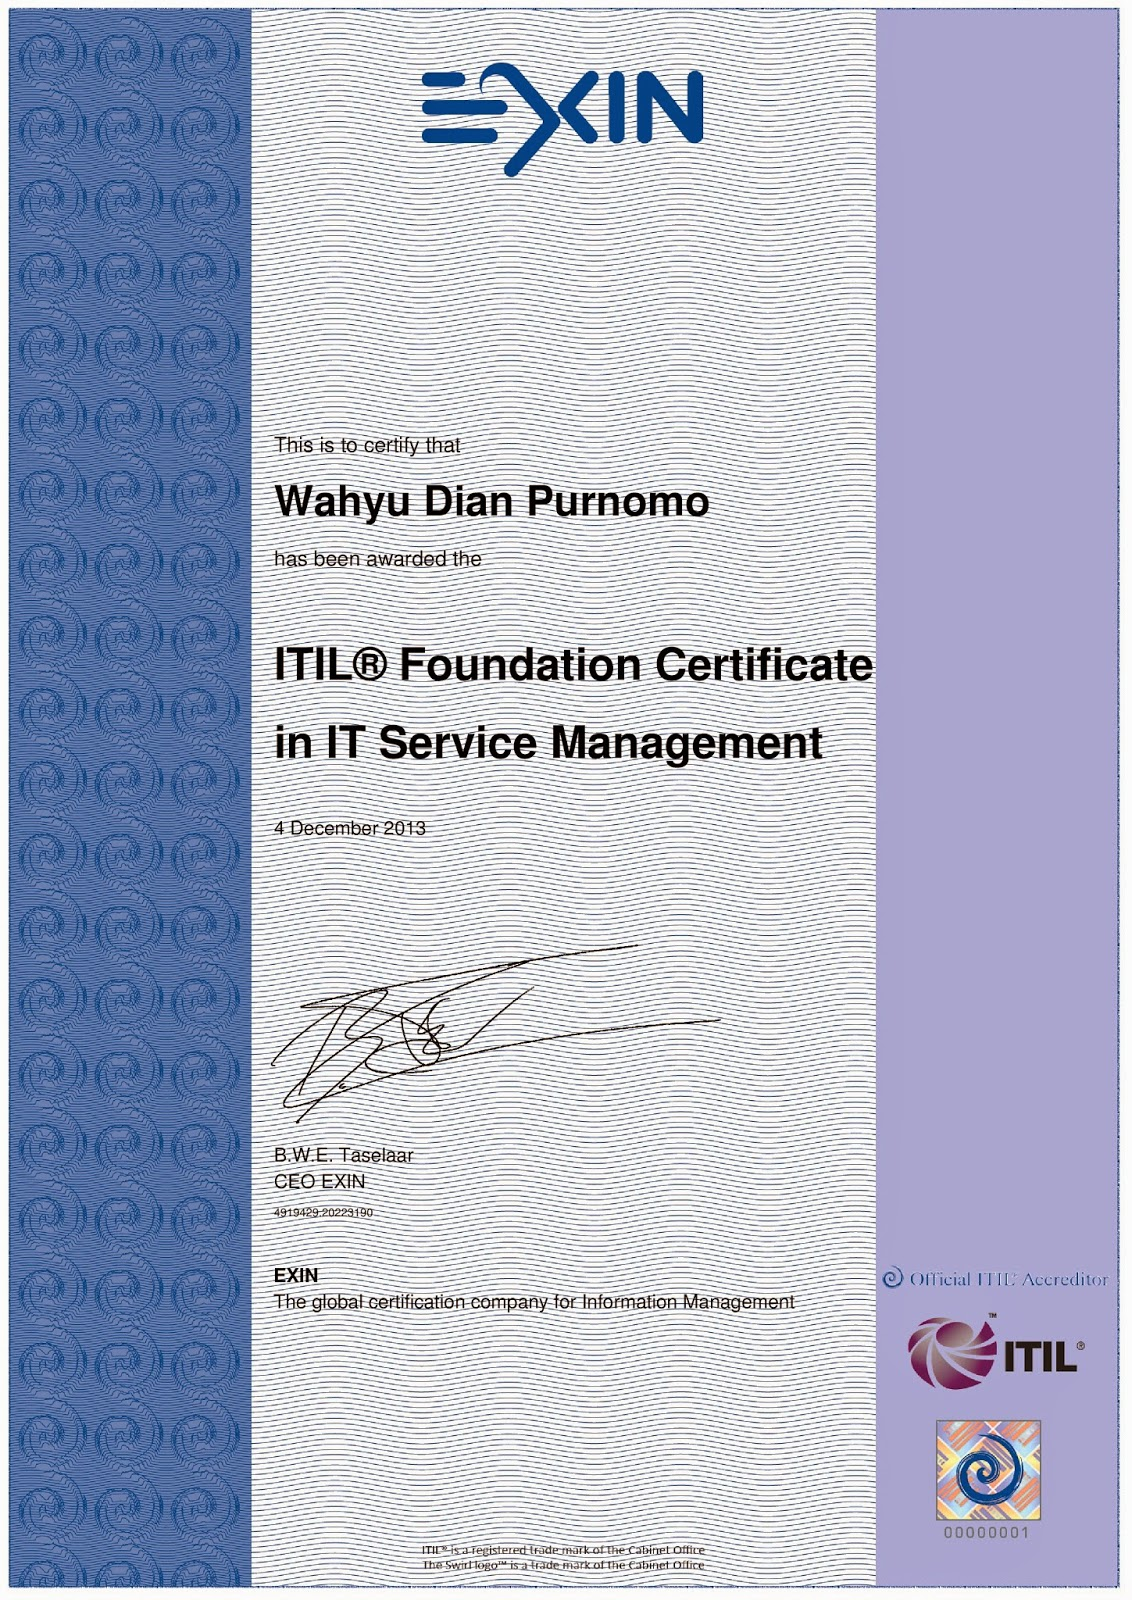 ITIL V3 Foundation Certificate in IT Service Management, 2013